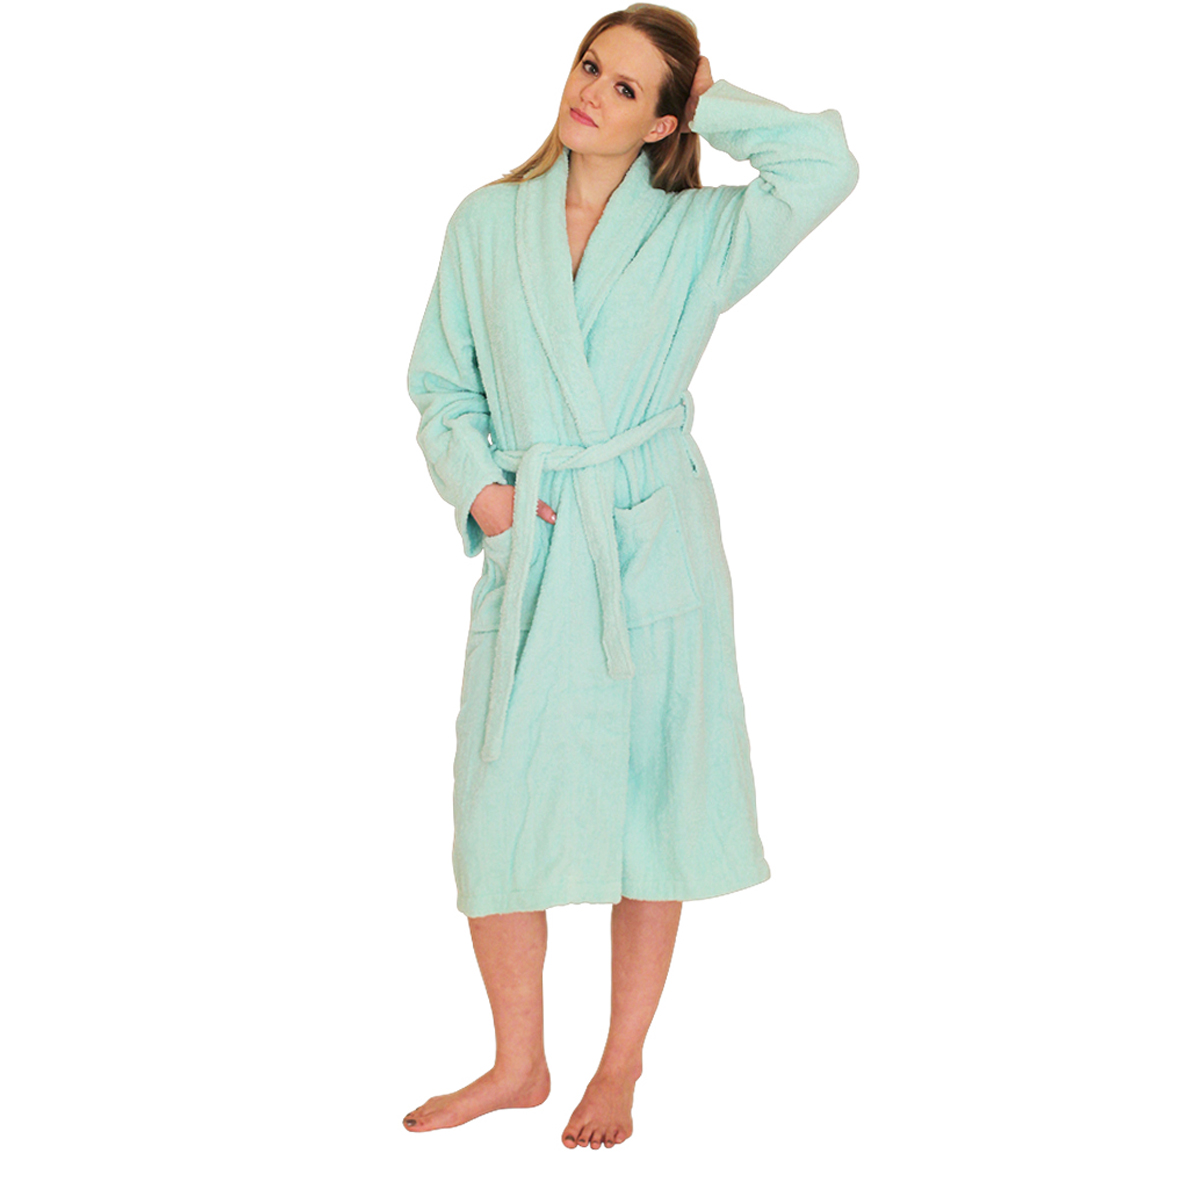 Bathrobe TerryCloth (Terry cloth) Bath Robe for women and men - $39.99 Colors: Ecru-L/XL Ecru-S/M Fuchsia-L/XL Fuchsia-S/M Navy-L/XL Navy-S/M Teal-L/XL Teal-S/M White-S/M . Sizes: